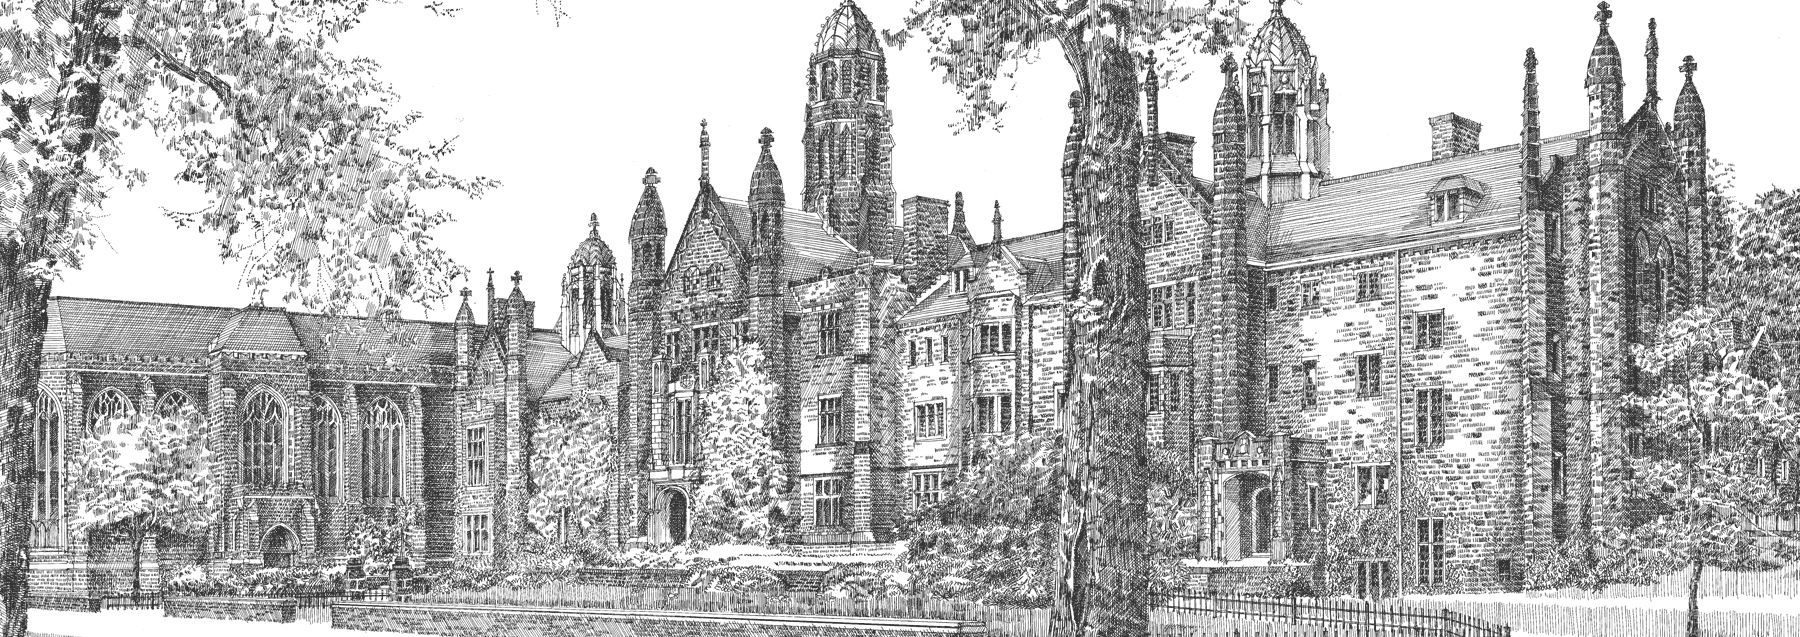 Etching illustration of the front campus of Trinity College